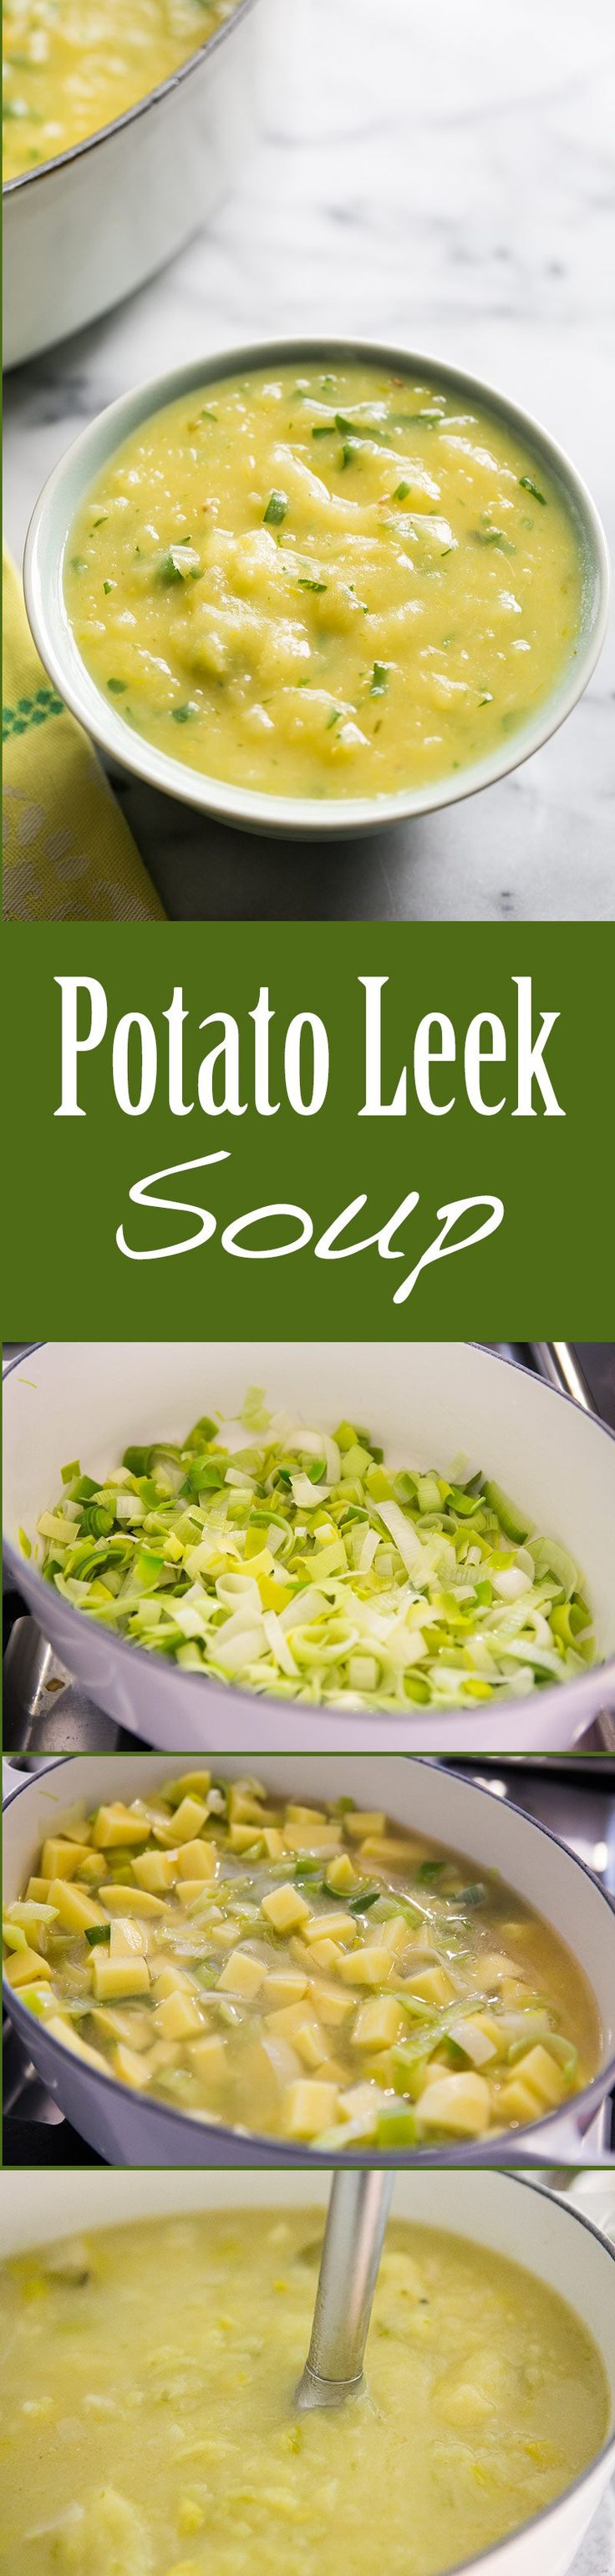 Simple and EASY Potato Leek Soup, creamy without the cream! A hearty soup with potatoes and leeks. On SimplyRecipes.com